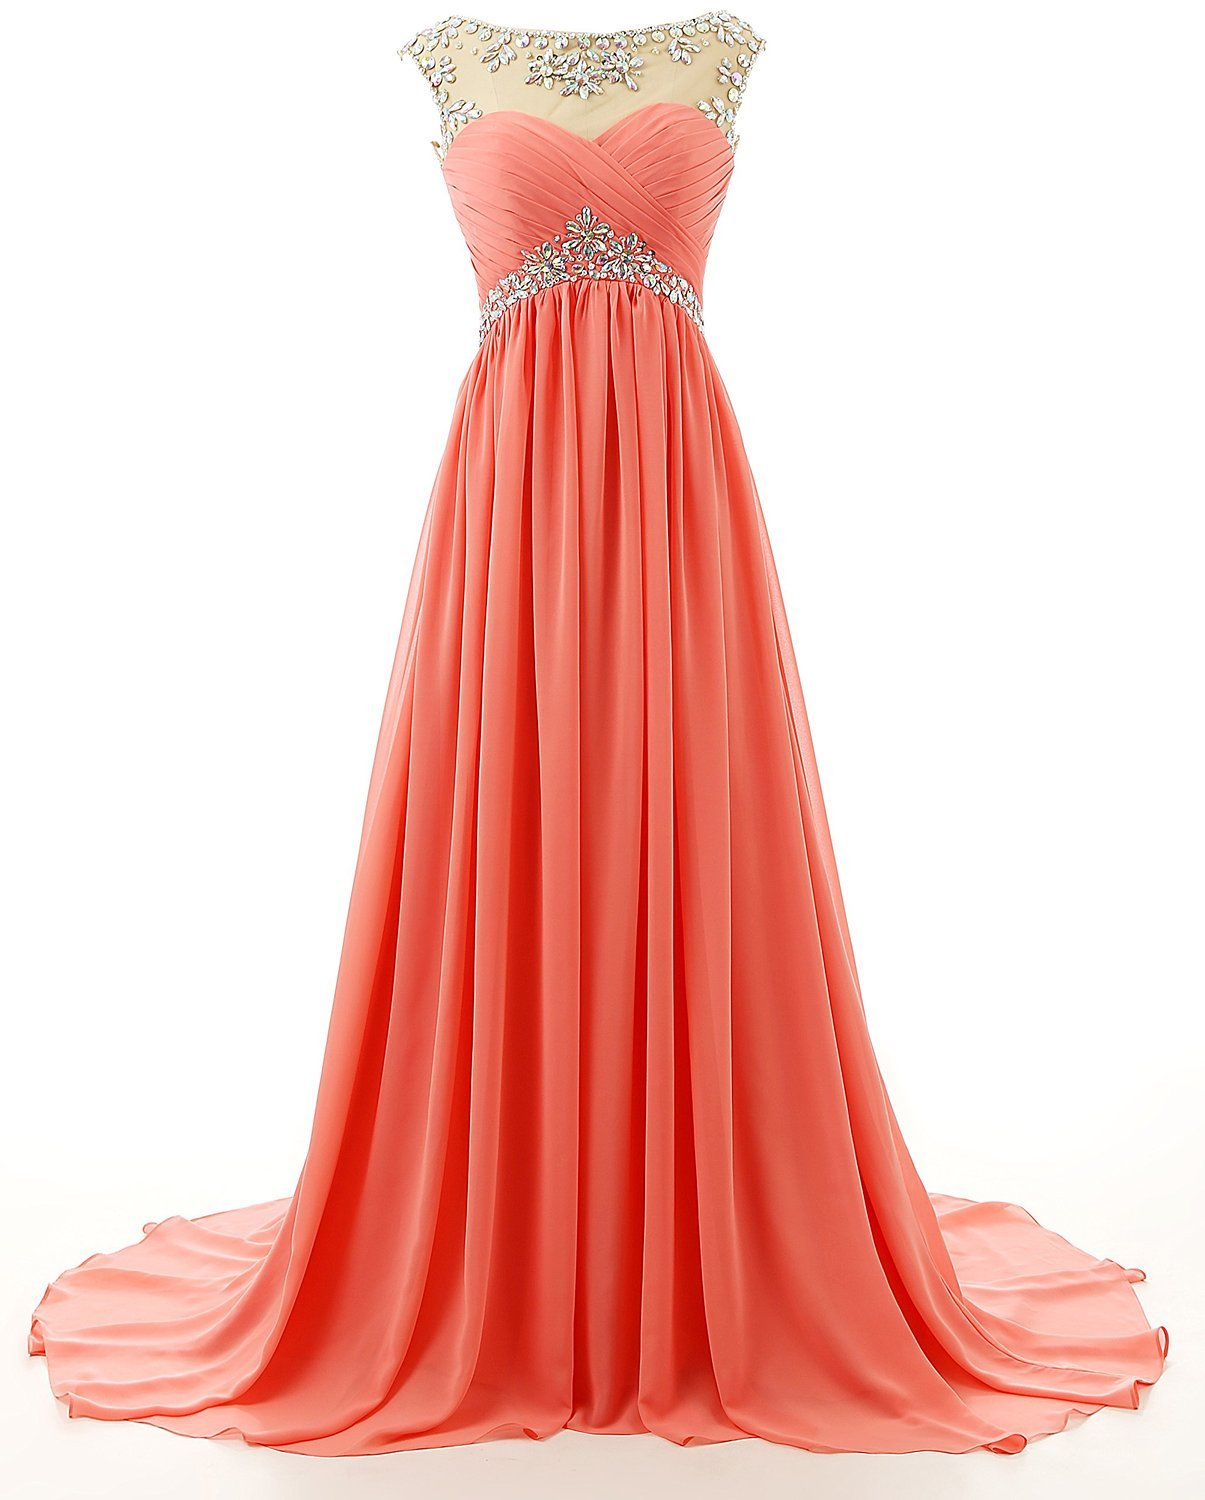 Available at Amazon: WenSai Women's Beaded Straps Bridesmaid Prom Dress Long Chiffon Evening Praty Gown